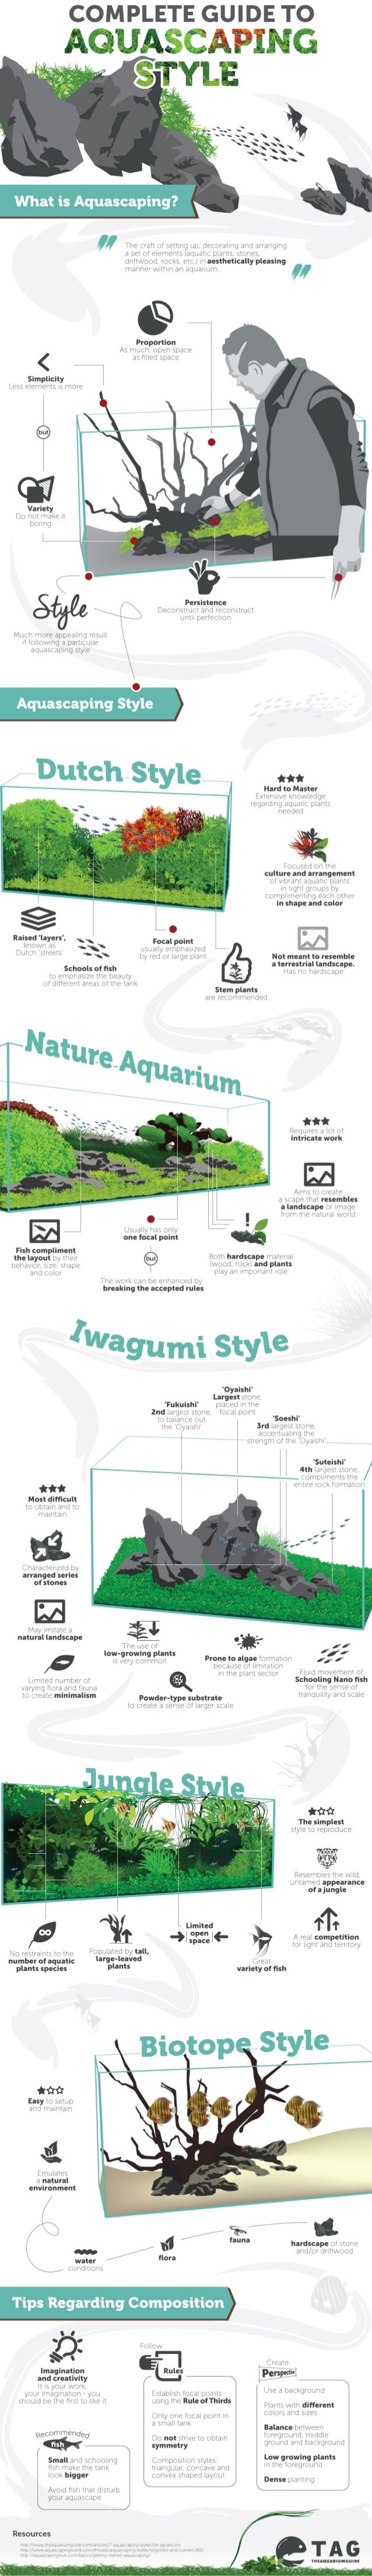 Complete Guide to Aquascaping Style